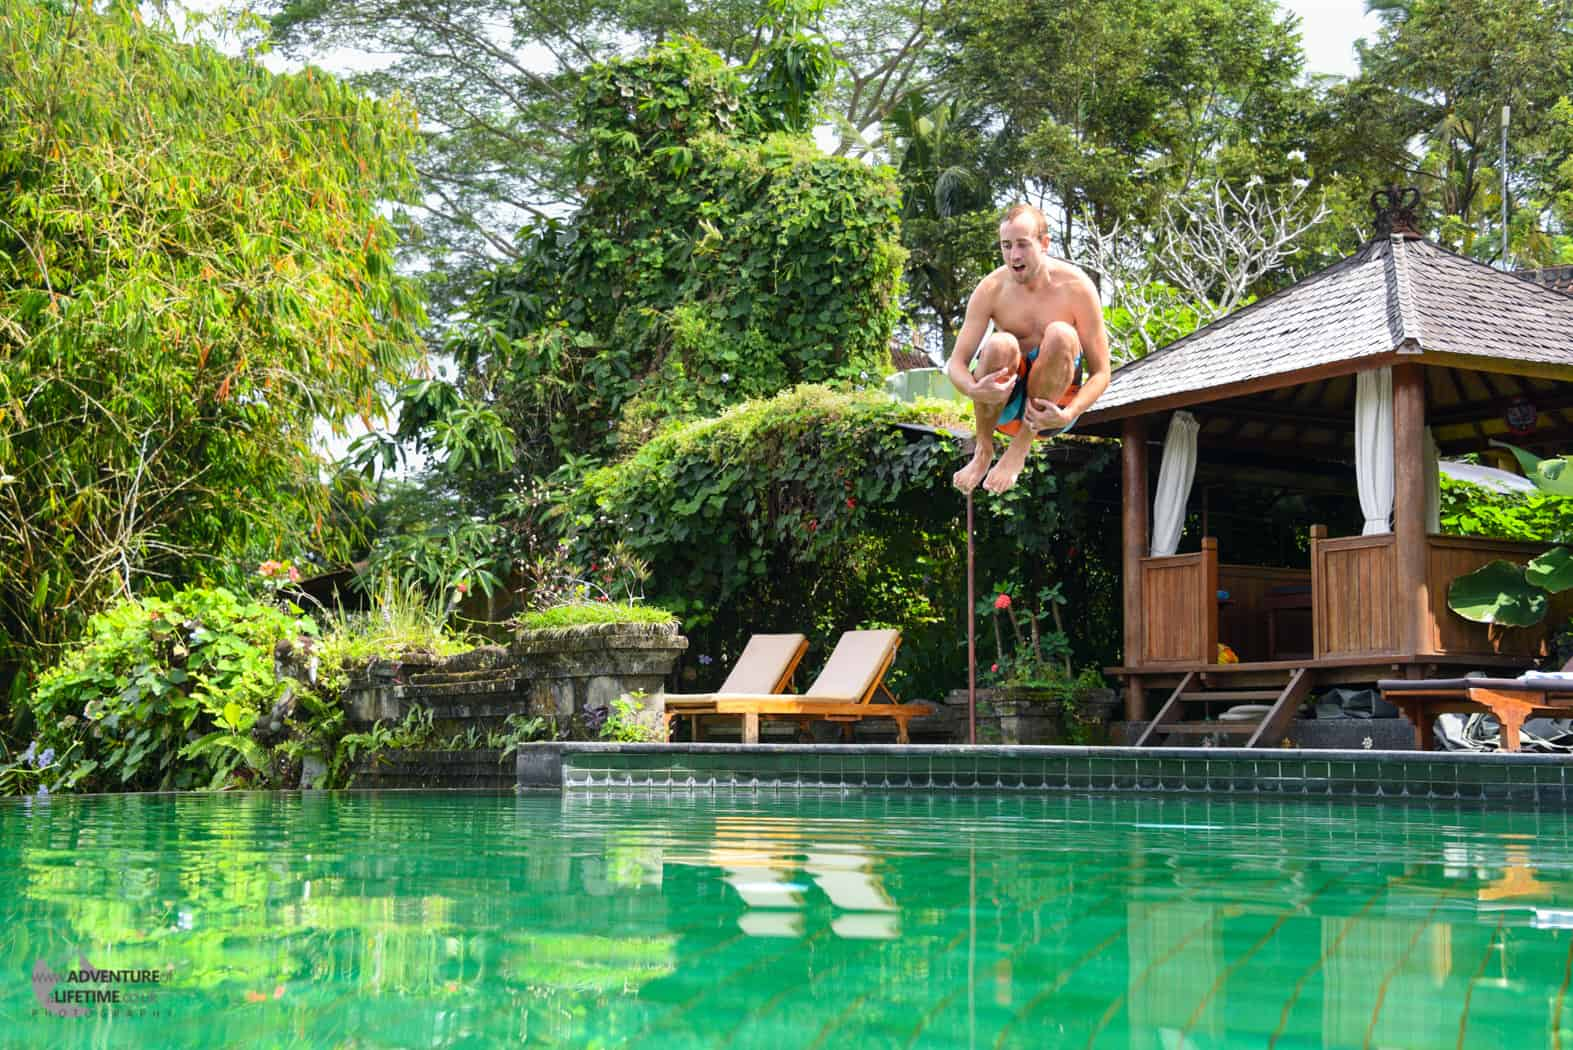 Michael Spoiling the Tranquil Pool in Ubud